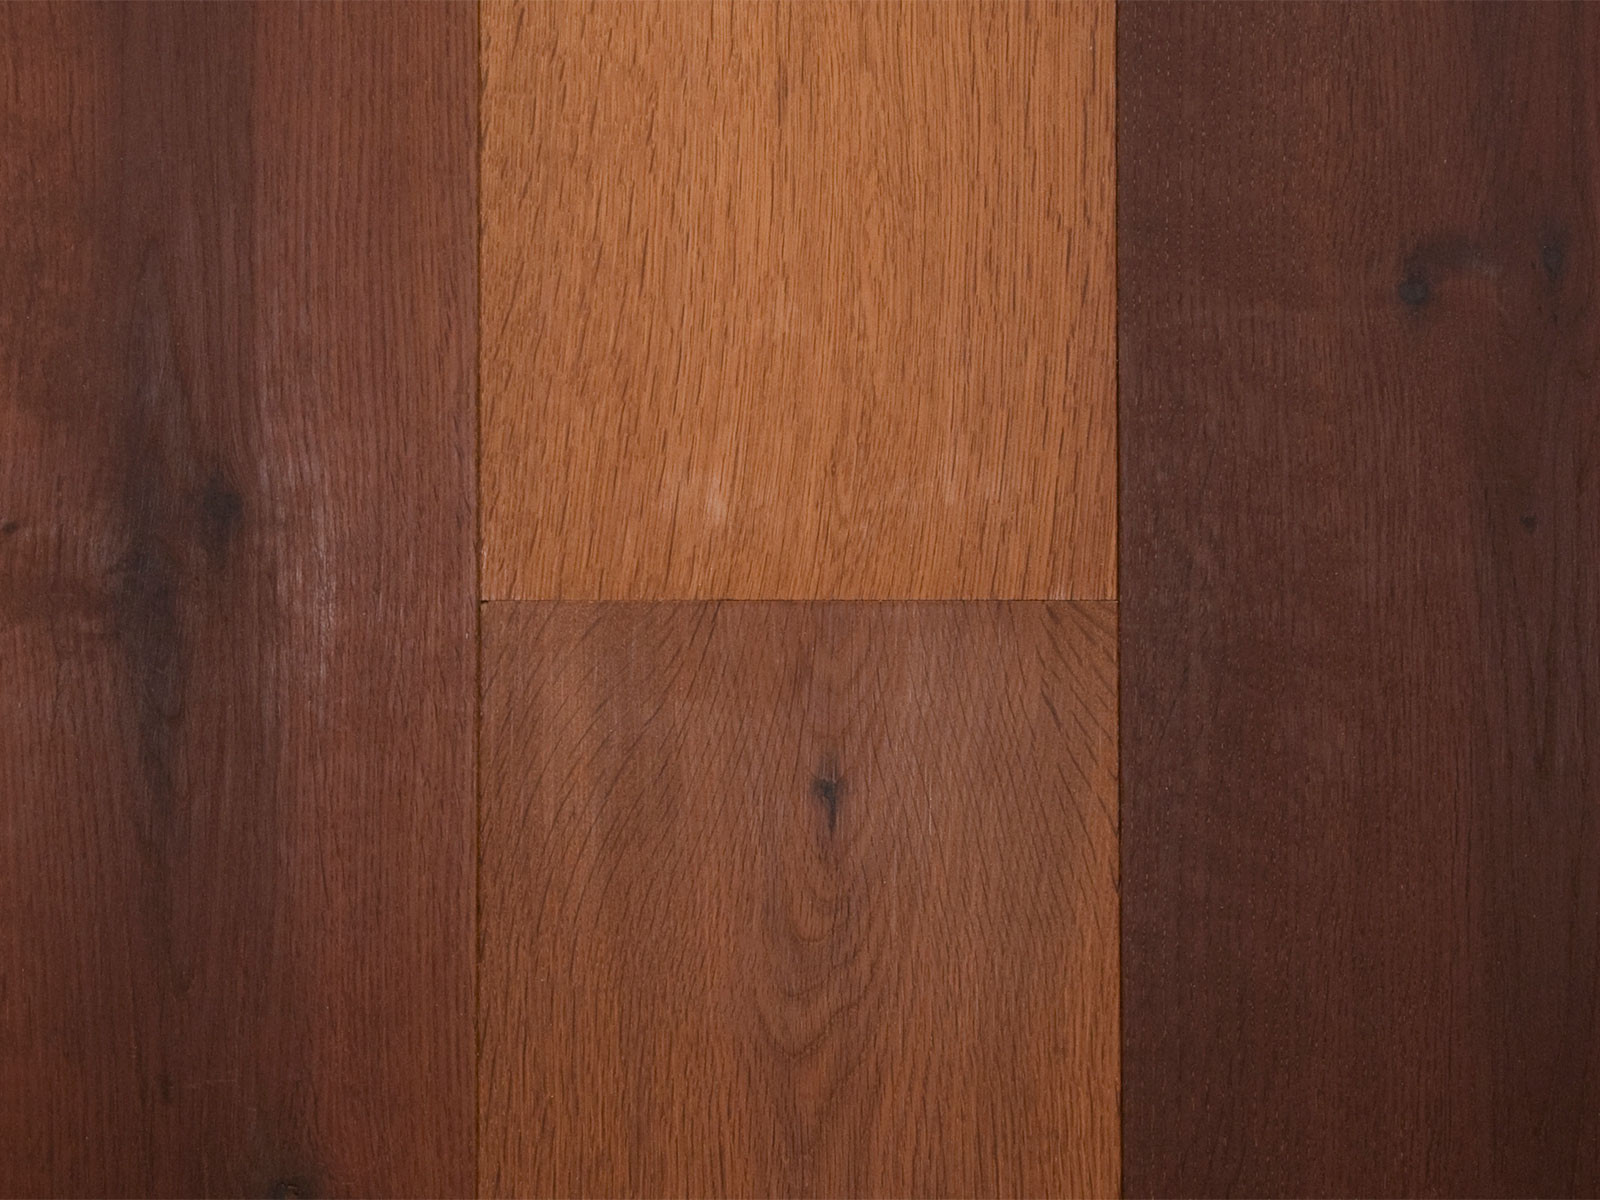 bruce maple hardwood flooring reviews of duchateau hardwood flooring houston tx discount engineered wood within savoy european oak